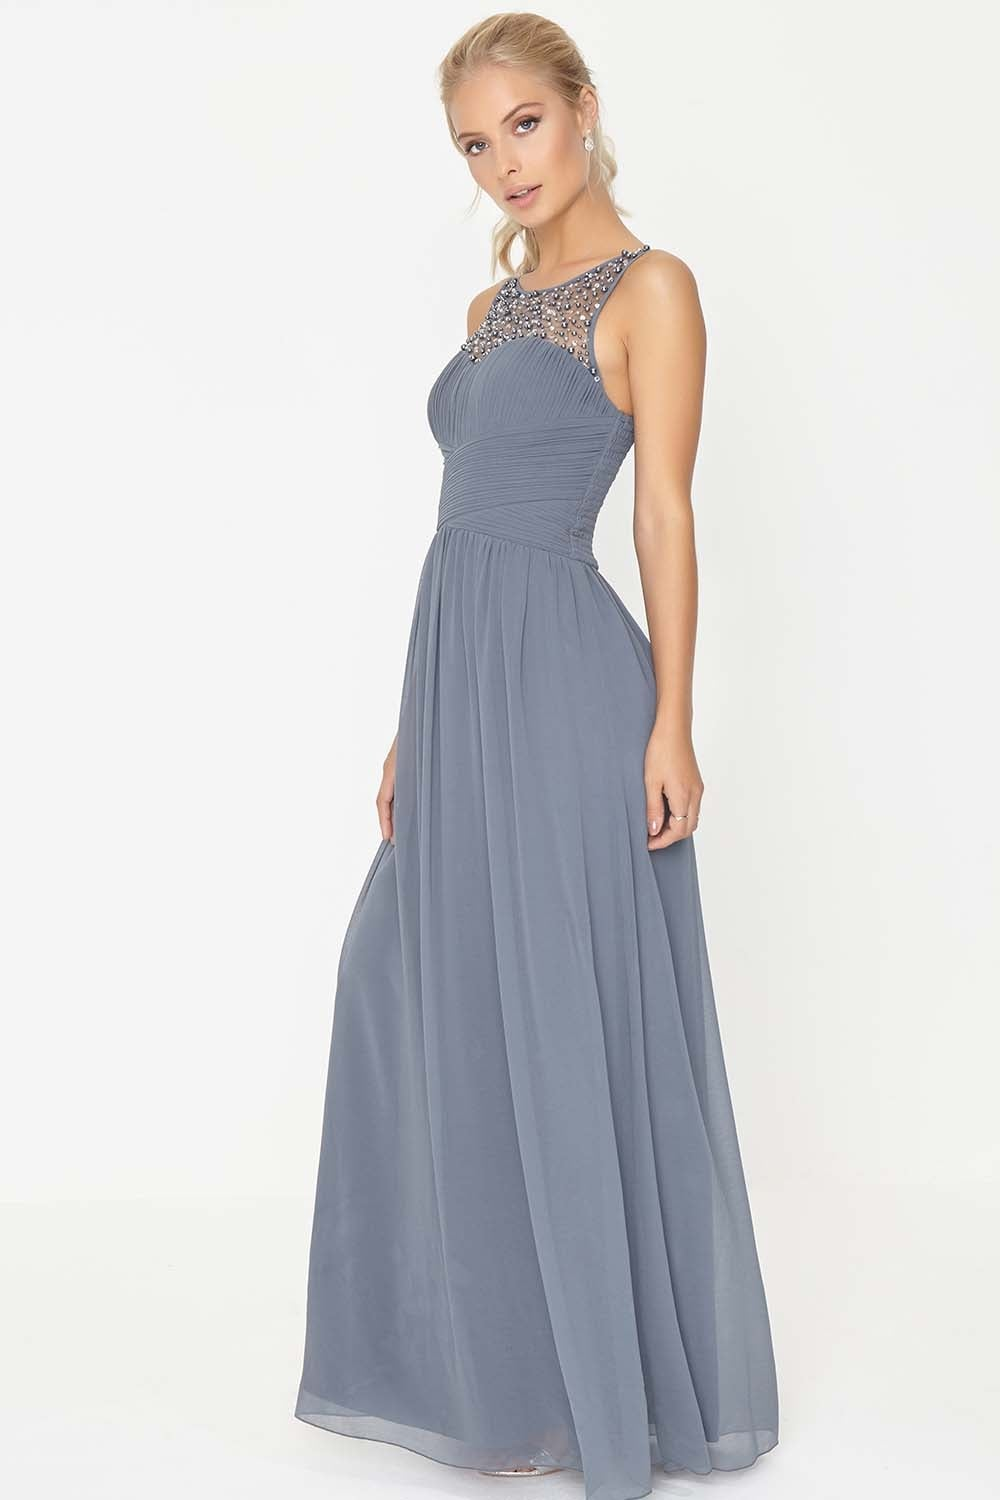 Find Maxi dresses, grey from the Womens department at Debenhams. Shop a wide range of Dresses products and more at our online shop today.